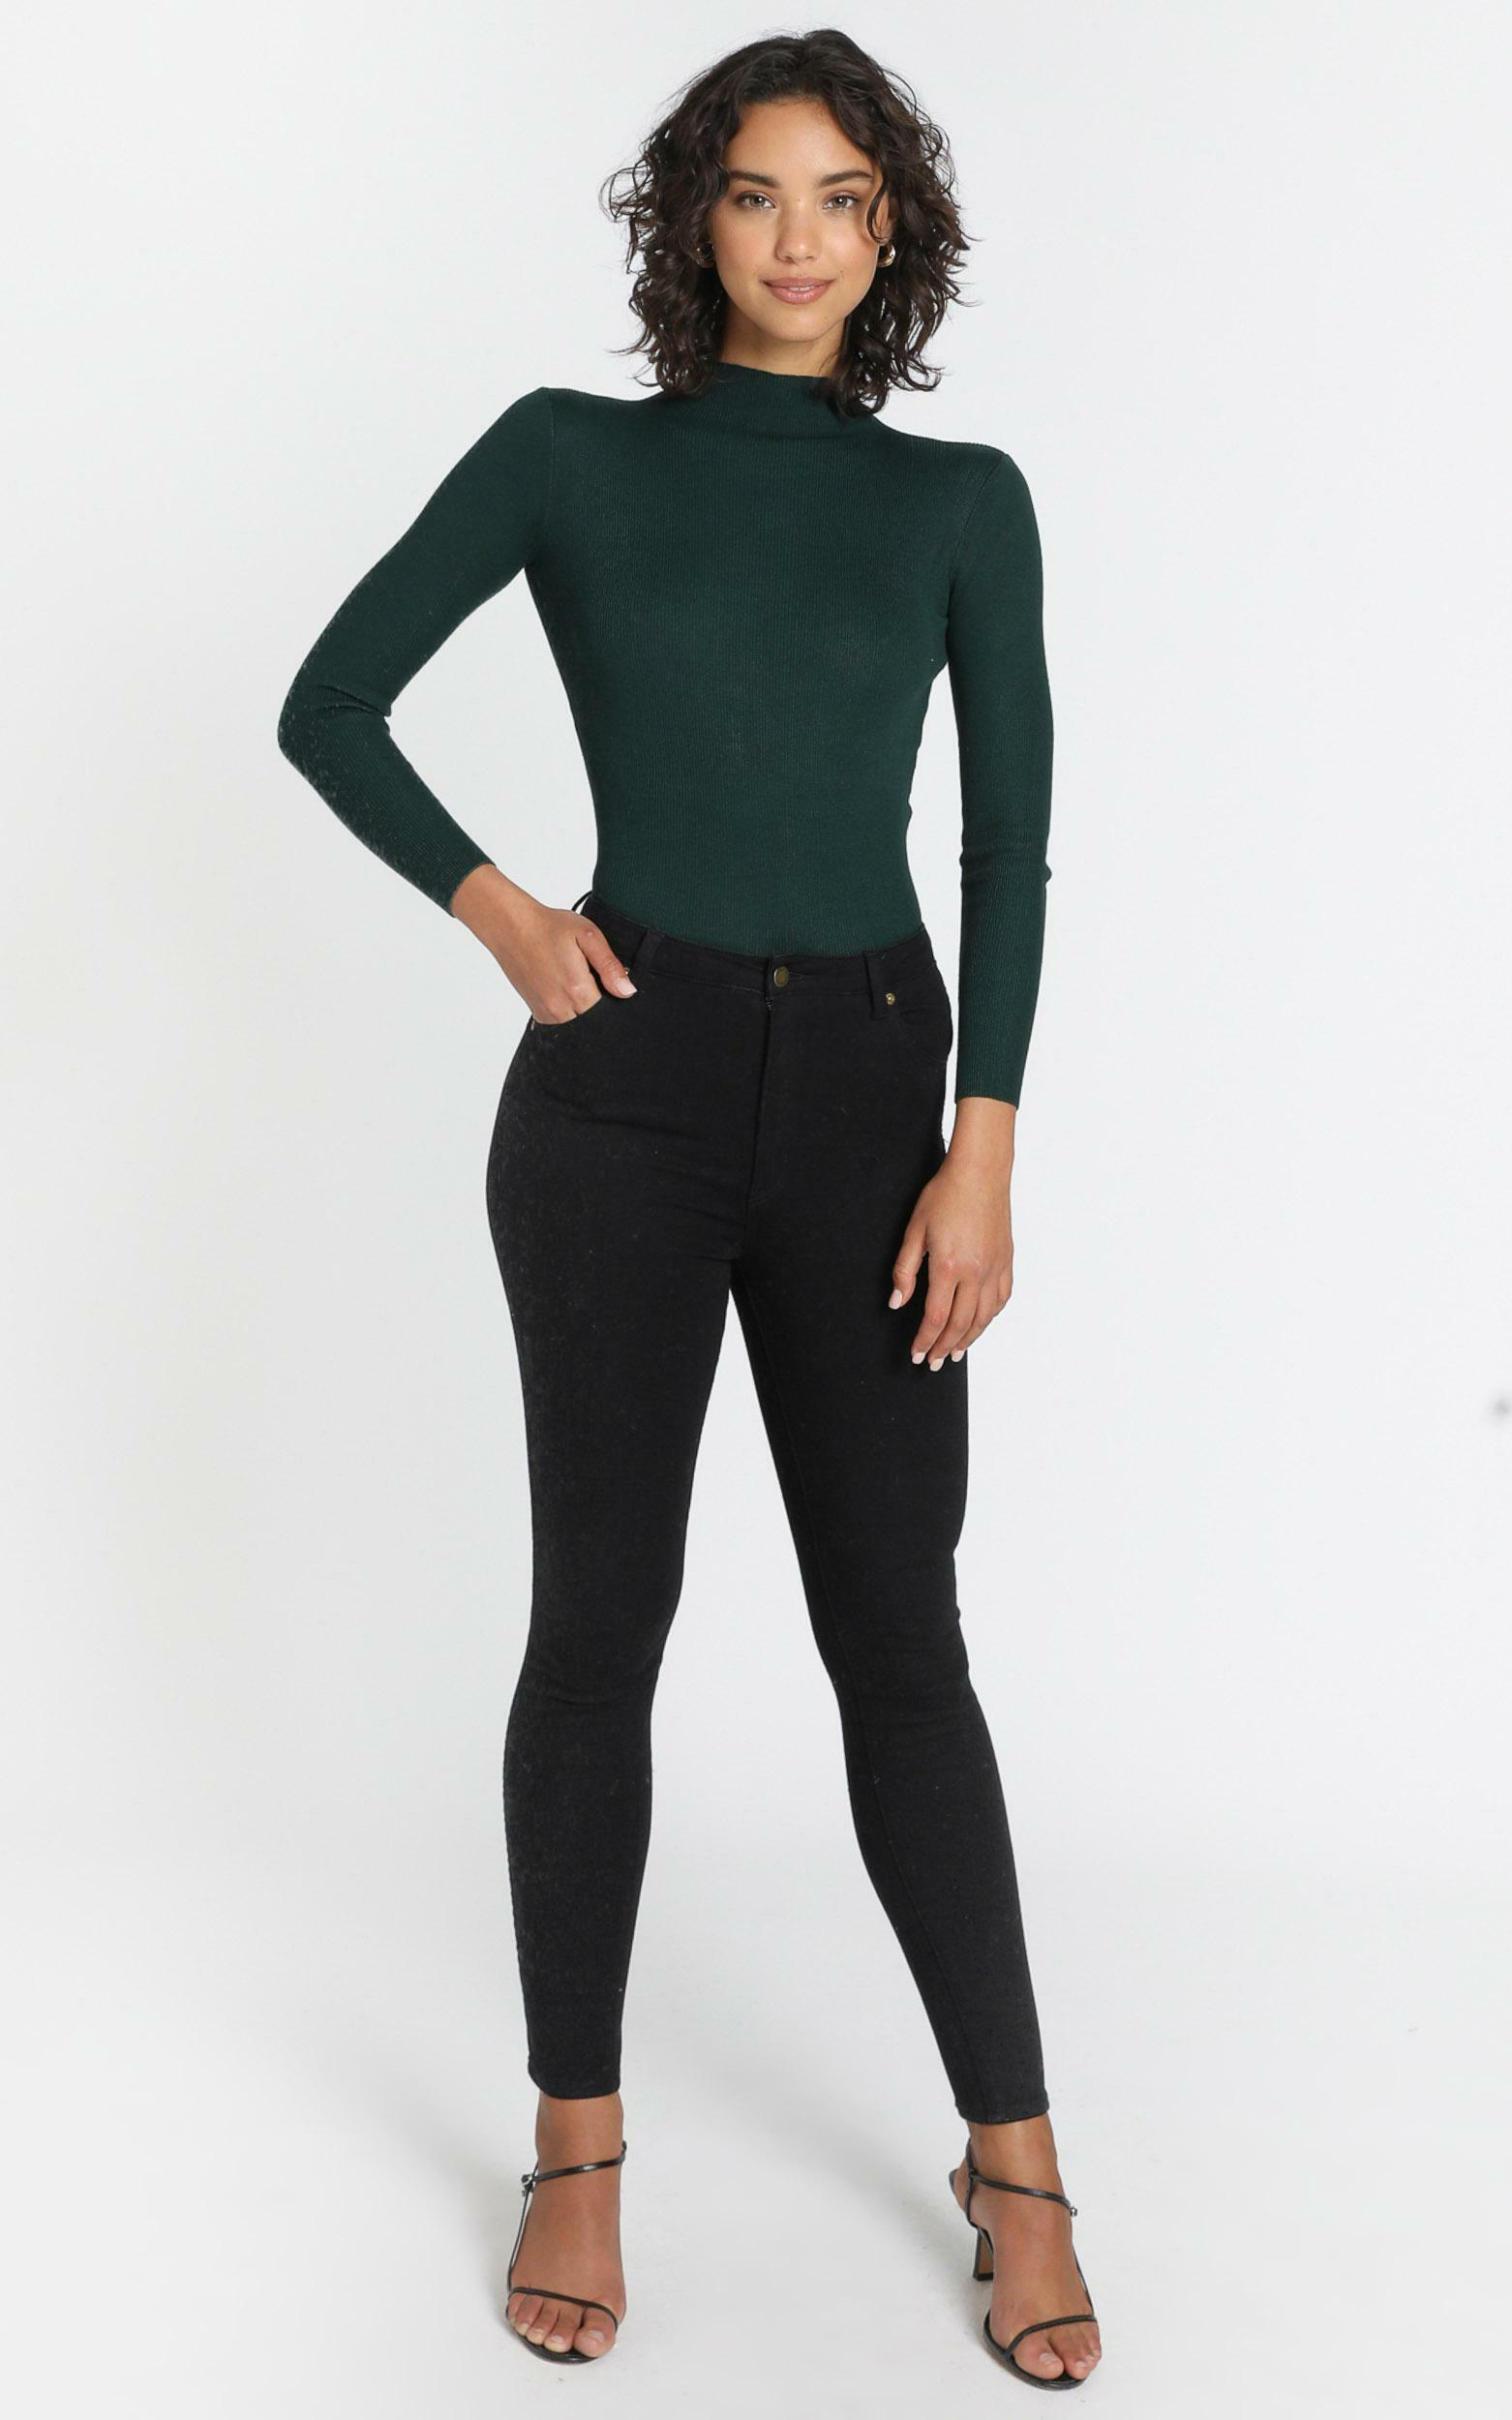 Lust for life knit top in green - 6 (XS), Green, hi-res image number null